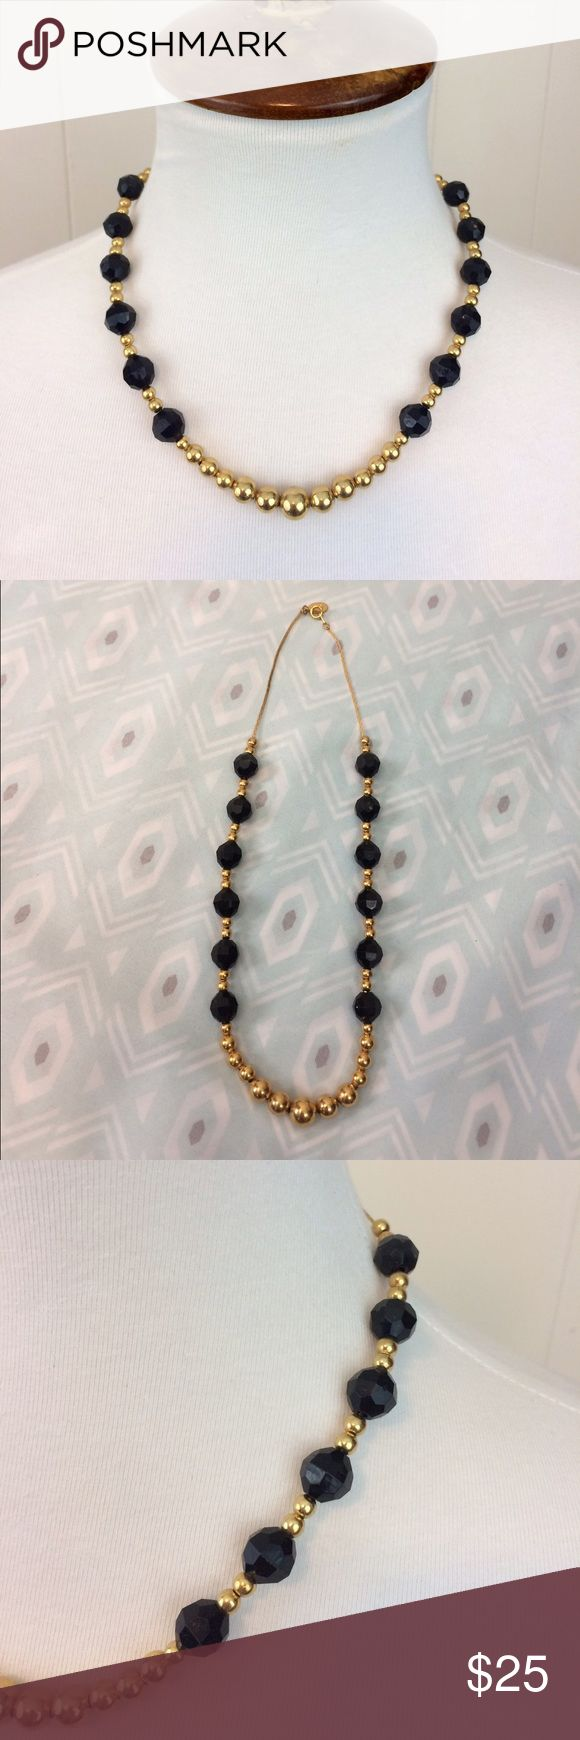 Vintage Park Lane Black & Gold Necklace • Vintage Park Lane black & gold necklace. • Really beautiful! • Preloved. • {If you have any questions please ask before buying.} •Colors may vary slightly from pictures• Park Lane Jewelry Necklaces